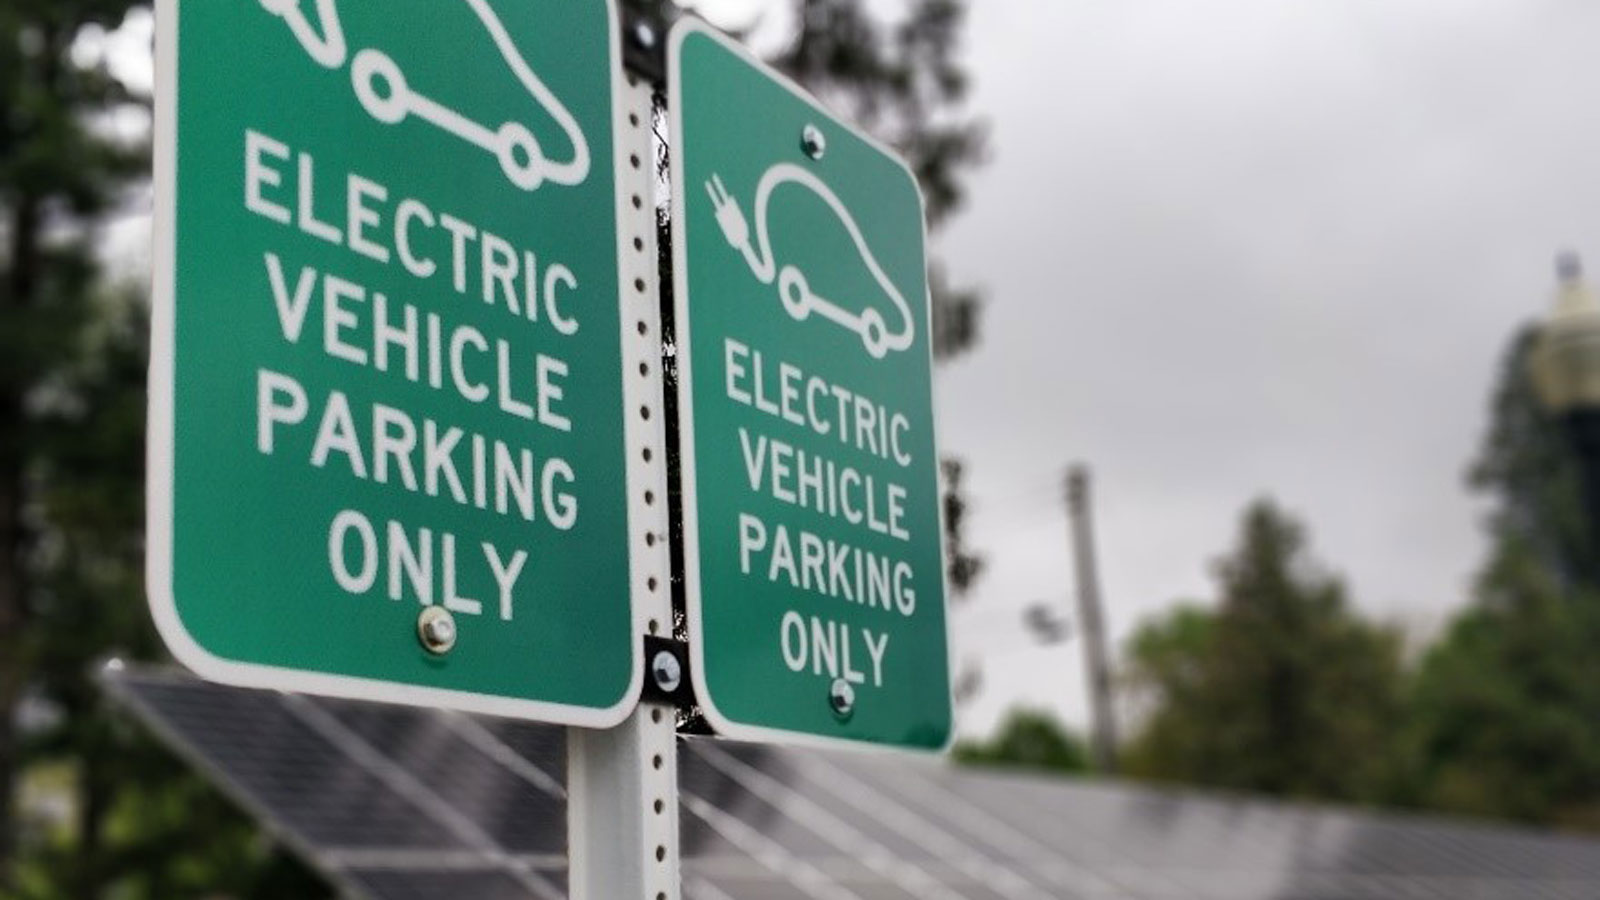 """<h3>ELECTRIC VEHICLES</h3><h5>There were <span class=""""slideshowHighlight"""">over 361,000 electric vehicles</span> sold in the U.S. in 2018, compared to virtually none in 2009. In the firstseven months of 2019, electric vehicle sales were up an additional14 percent over that same periodin 2018.</h5>"""